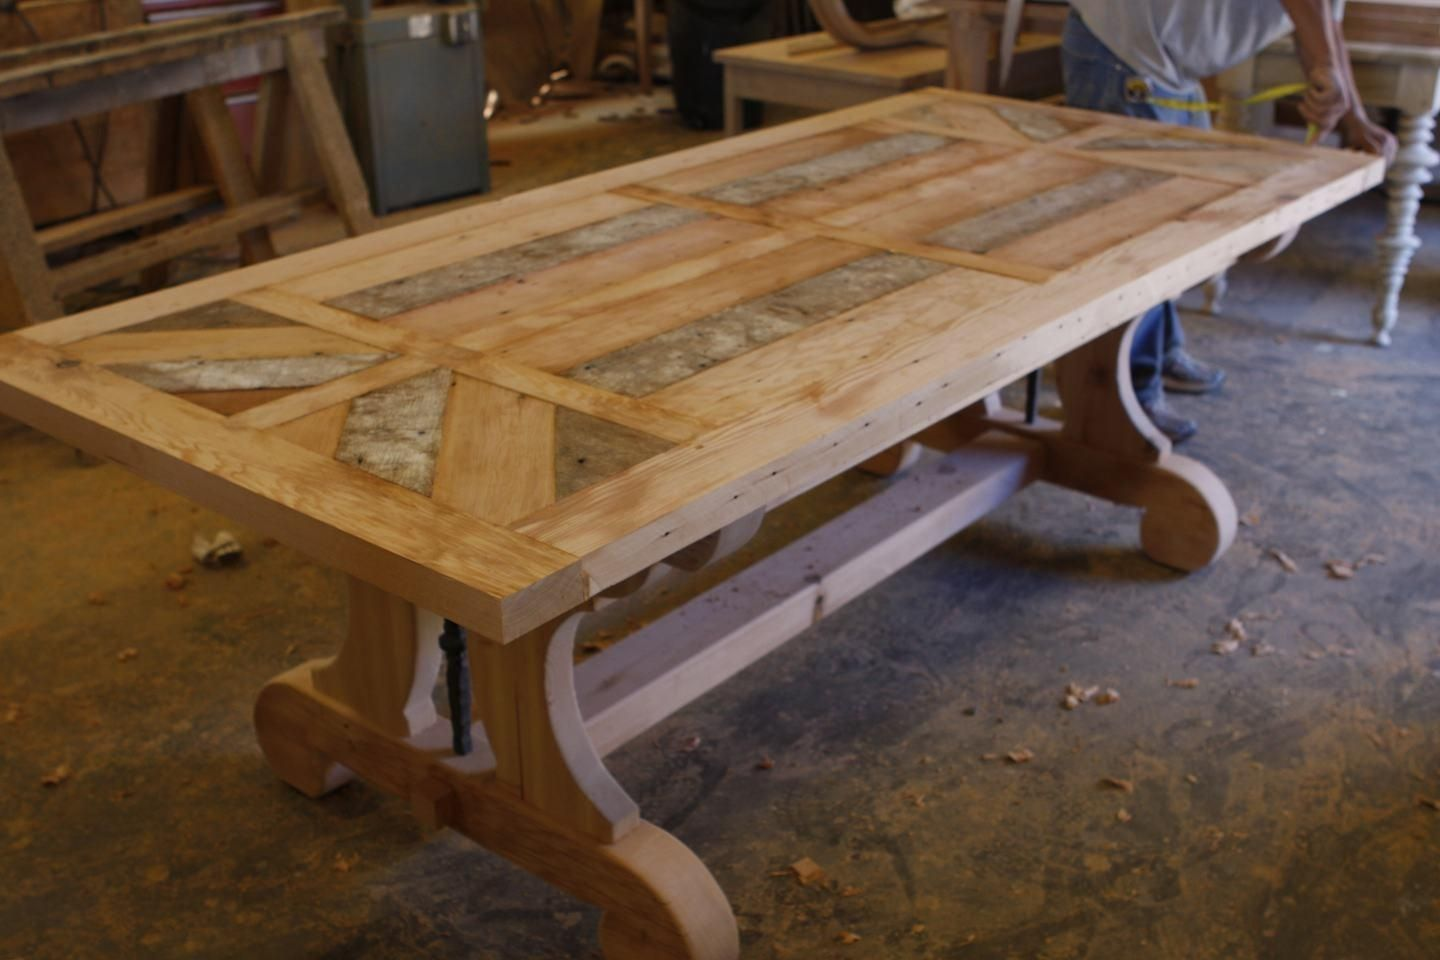 Custom trestle dining table with leaf extensions built in reclaimed wood